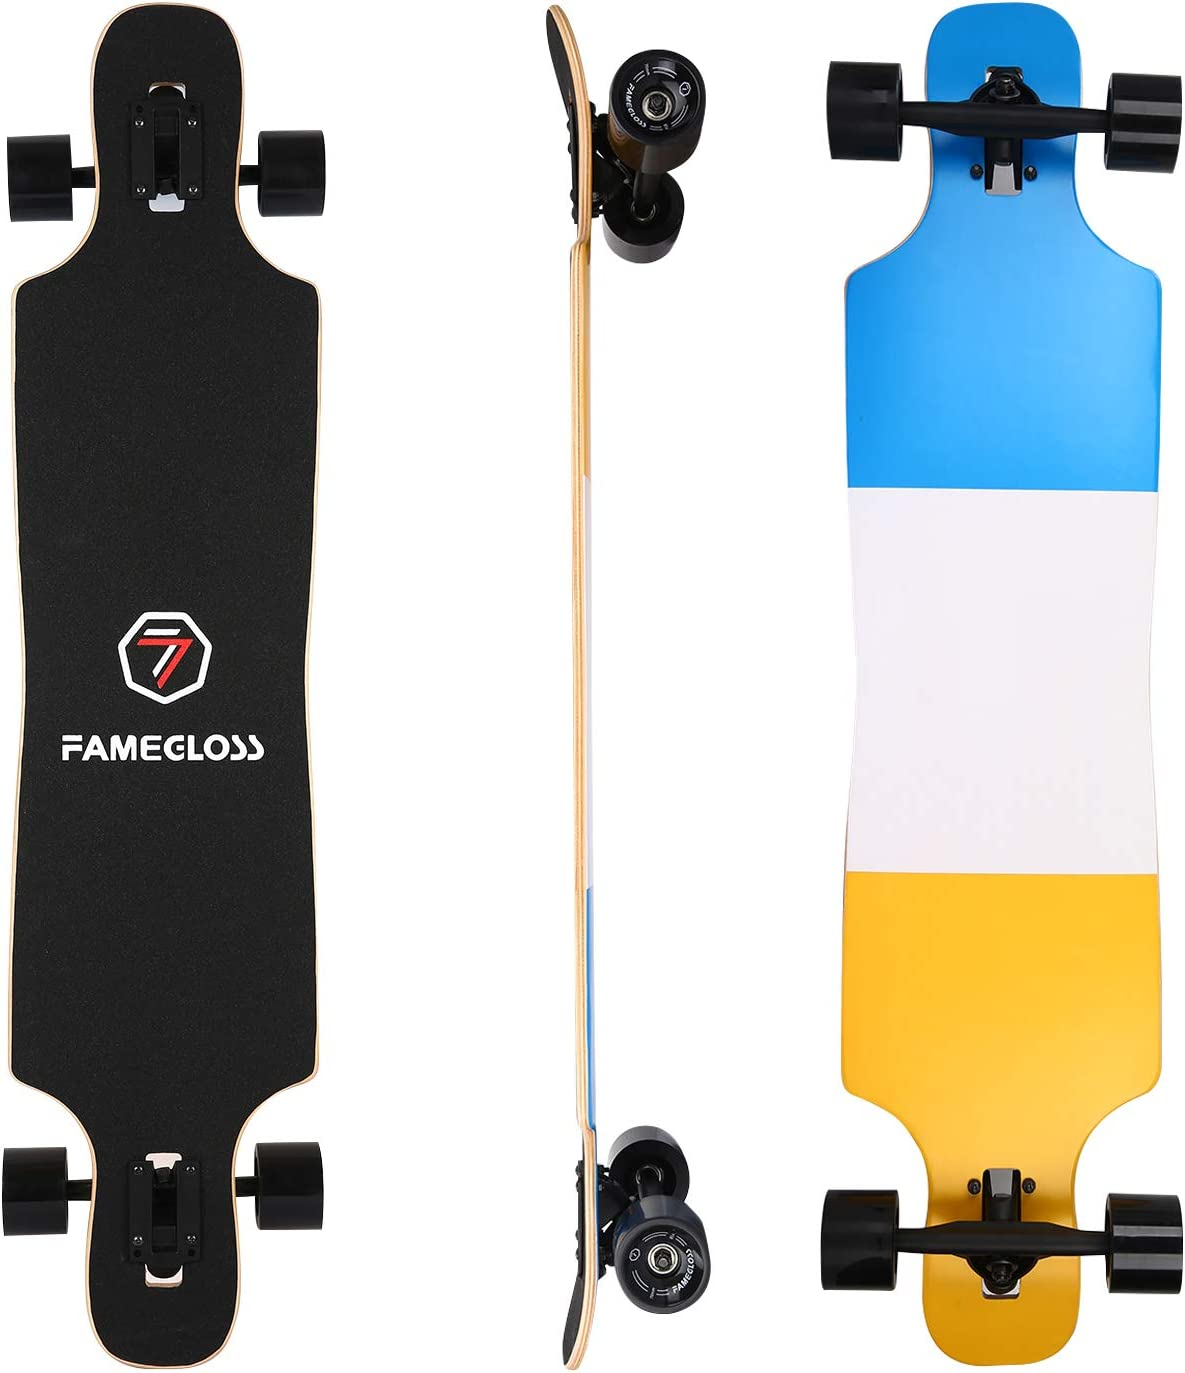 FAMEGLOSS Longboard Skateboard 42 inch Drop Through Deck Complete 7-Ply Maple Cruiser Freestyle, Concave Skateboard Cruiser for Kids Youth Adults